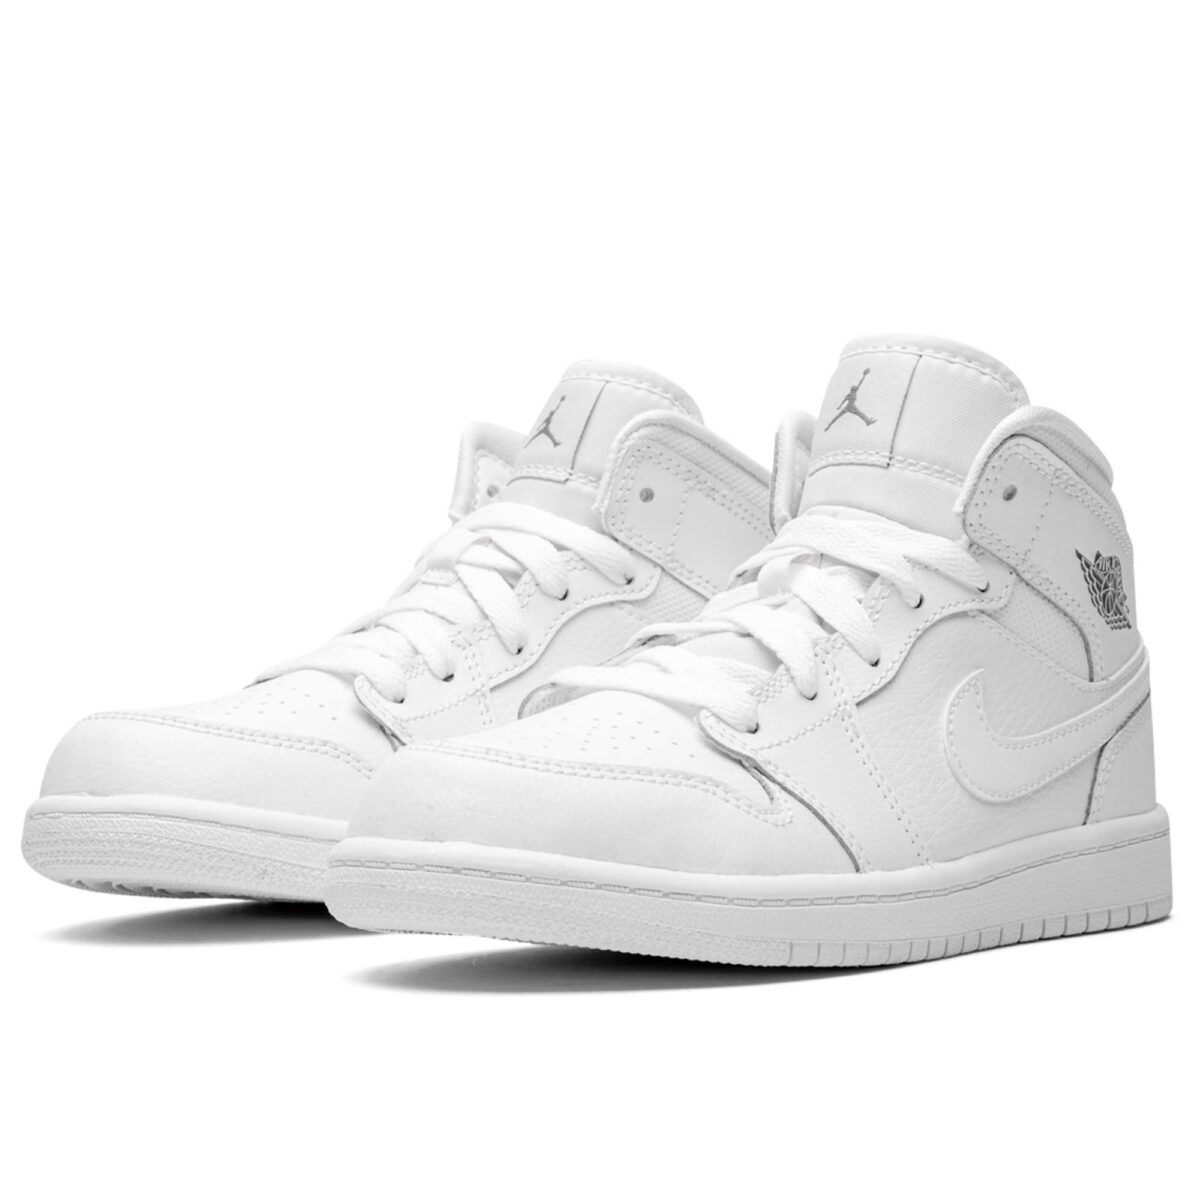 nike air Jordan 1 mid BP white 670734_102 купить